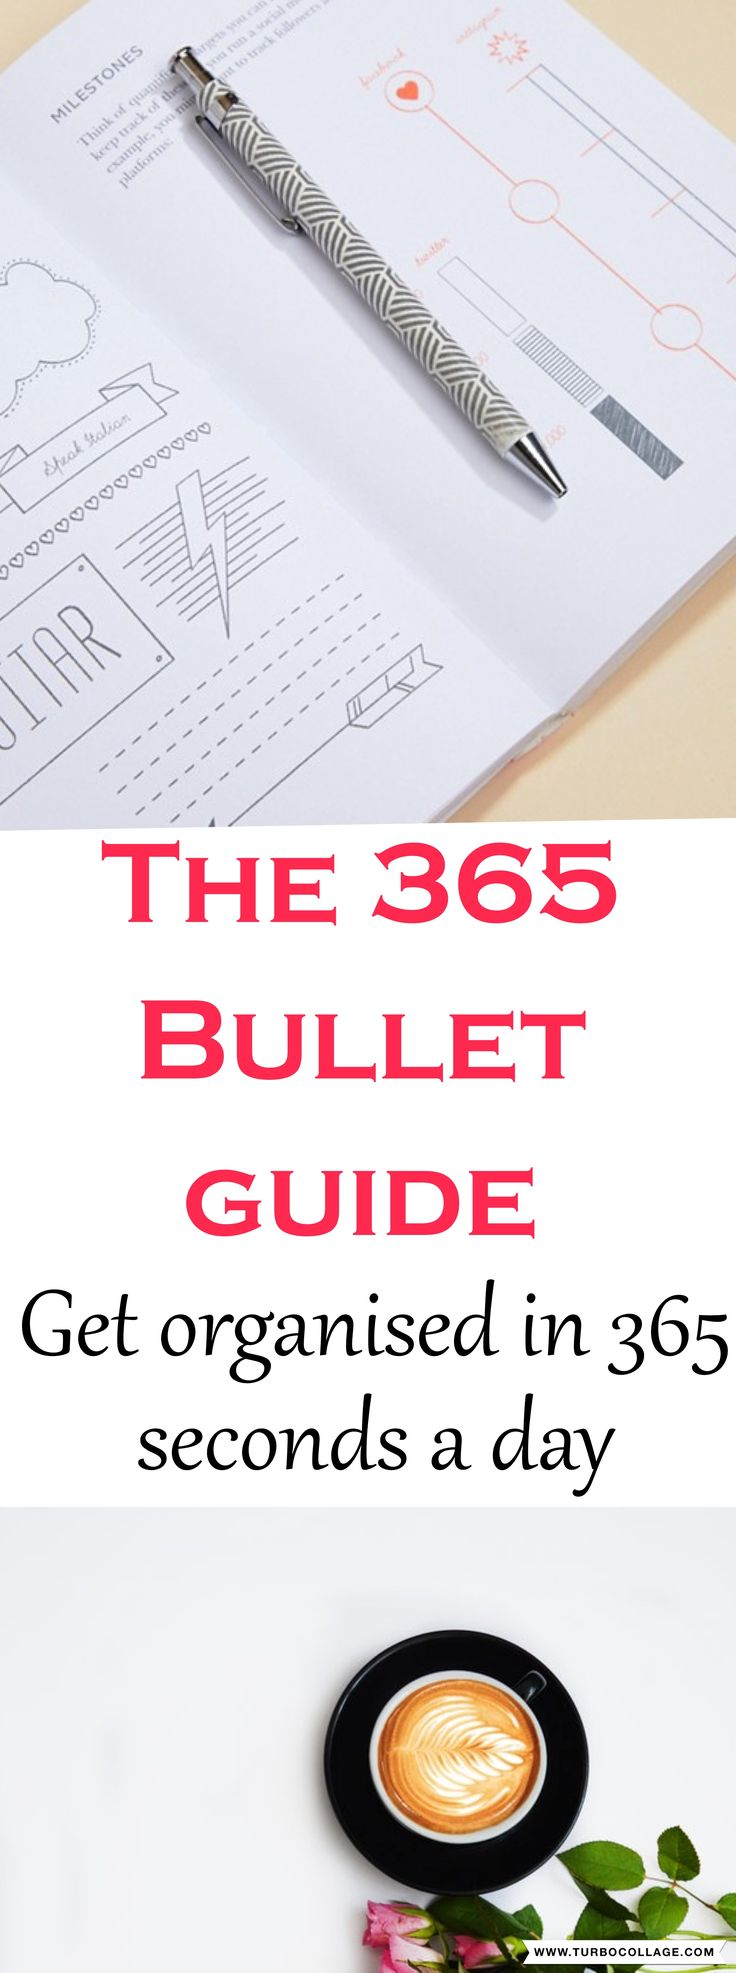 Take 365 seconds or less a day to learn the bullet system activities and get organized in one year. The 365 bullet guide contains ideas and techniques for habit trackers, sleep logs and handwriting exercises. #bulletjournal #bulletjournaling #bujo #bujojunkies #bulletjournaljunkies #afflink